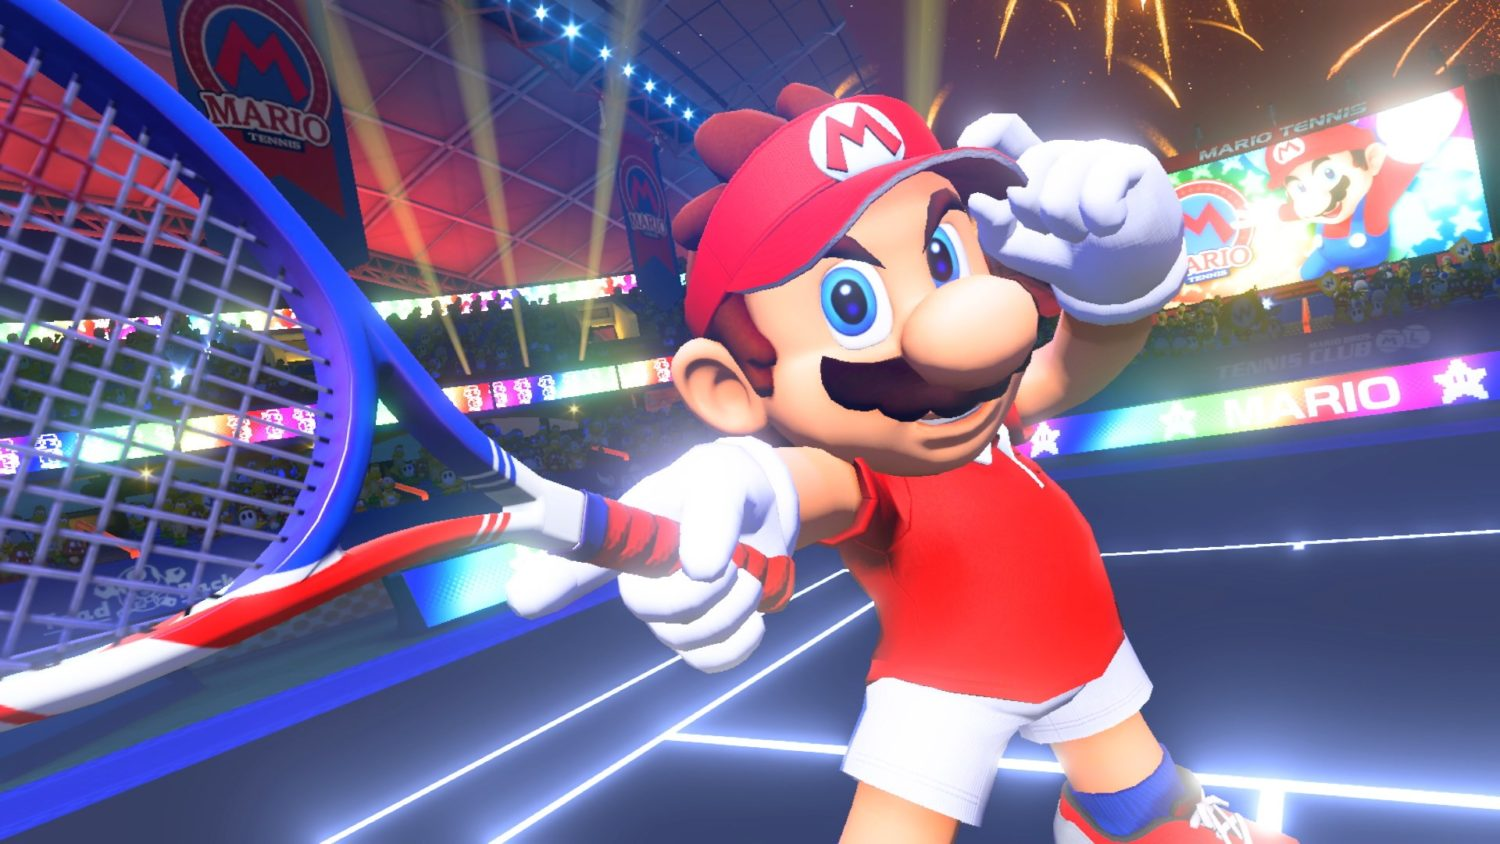 Unexpected Nintendo Character Referenced In Mario Tennis Aces Code